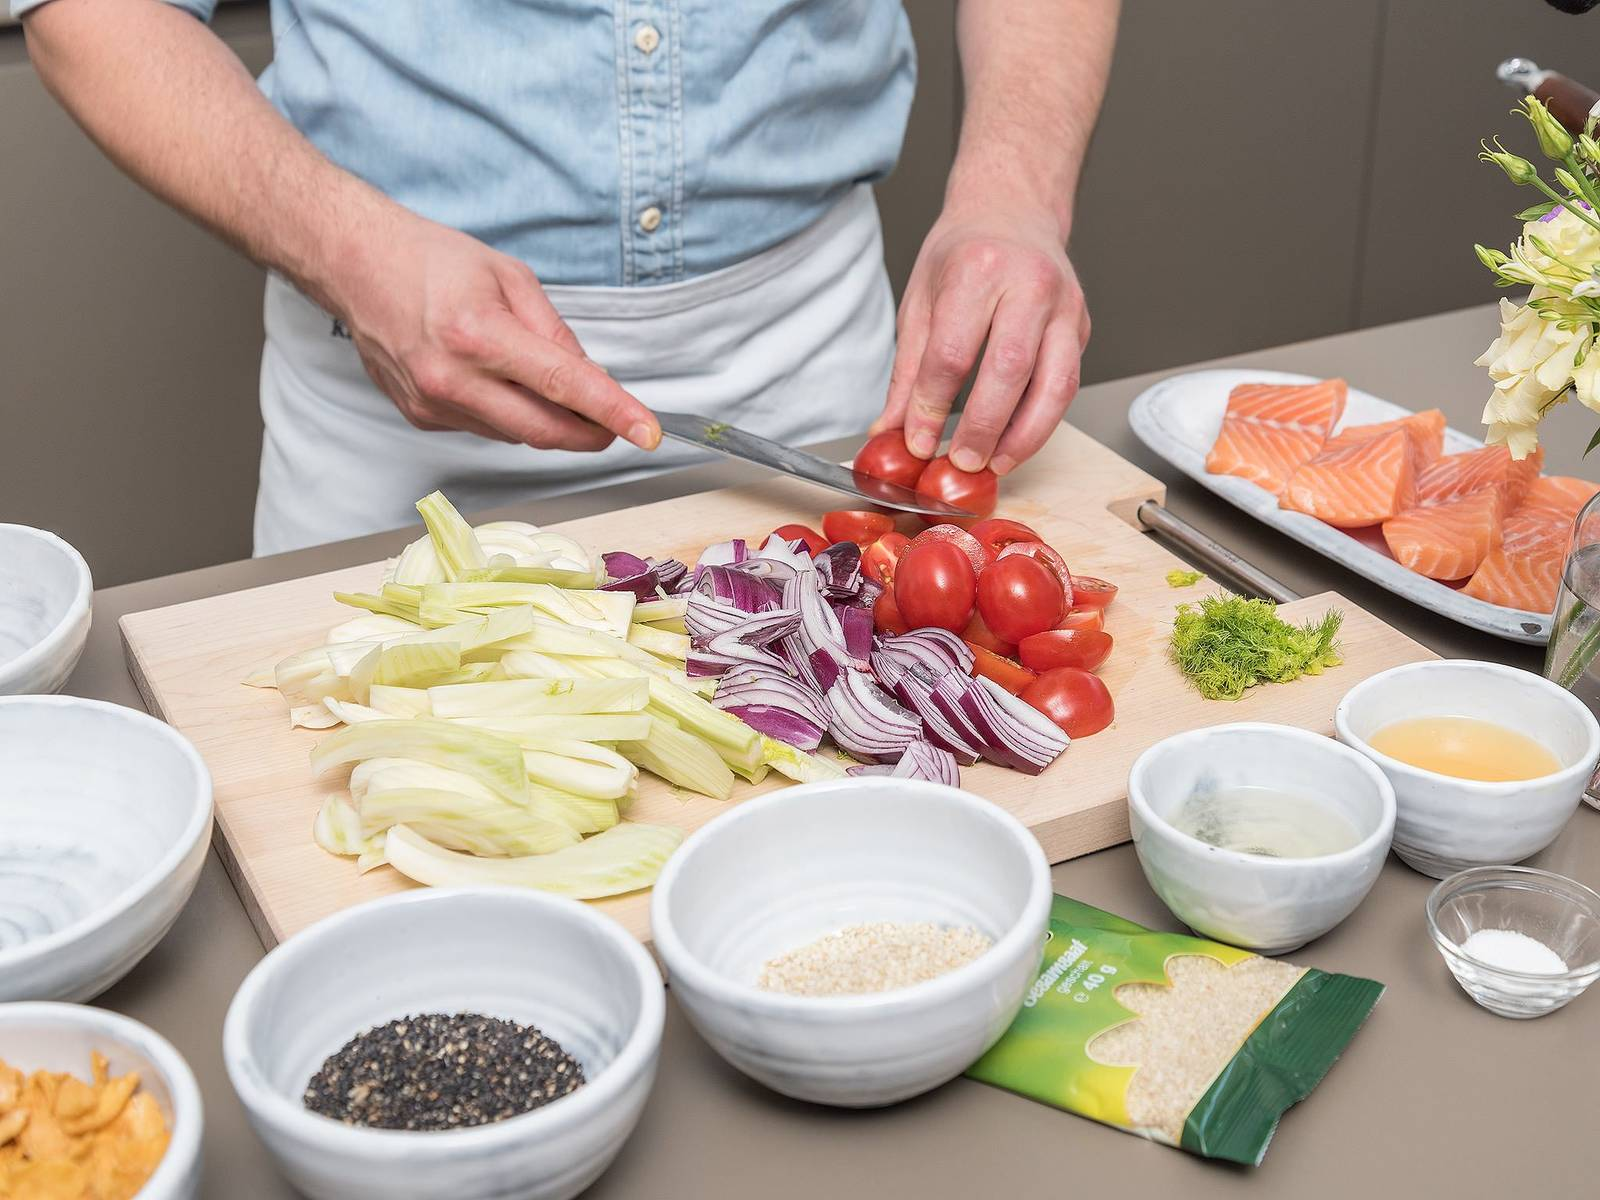 Heat oil in frying pan set over medium-high heat and fry salmon, crust side-down for approx. 3 – 5 min. Then place in the oven at 120°C/250°F and bake for approx. 10 min. In the meantime, clean and cut fennel and onions into wedges and quarter the tomatoes.